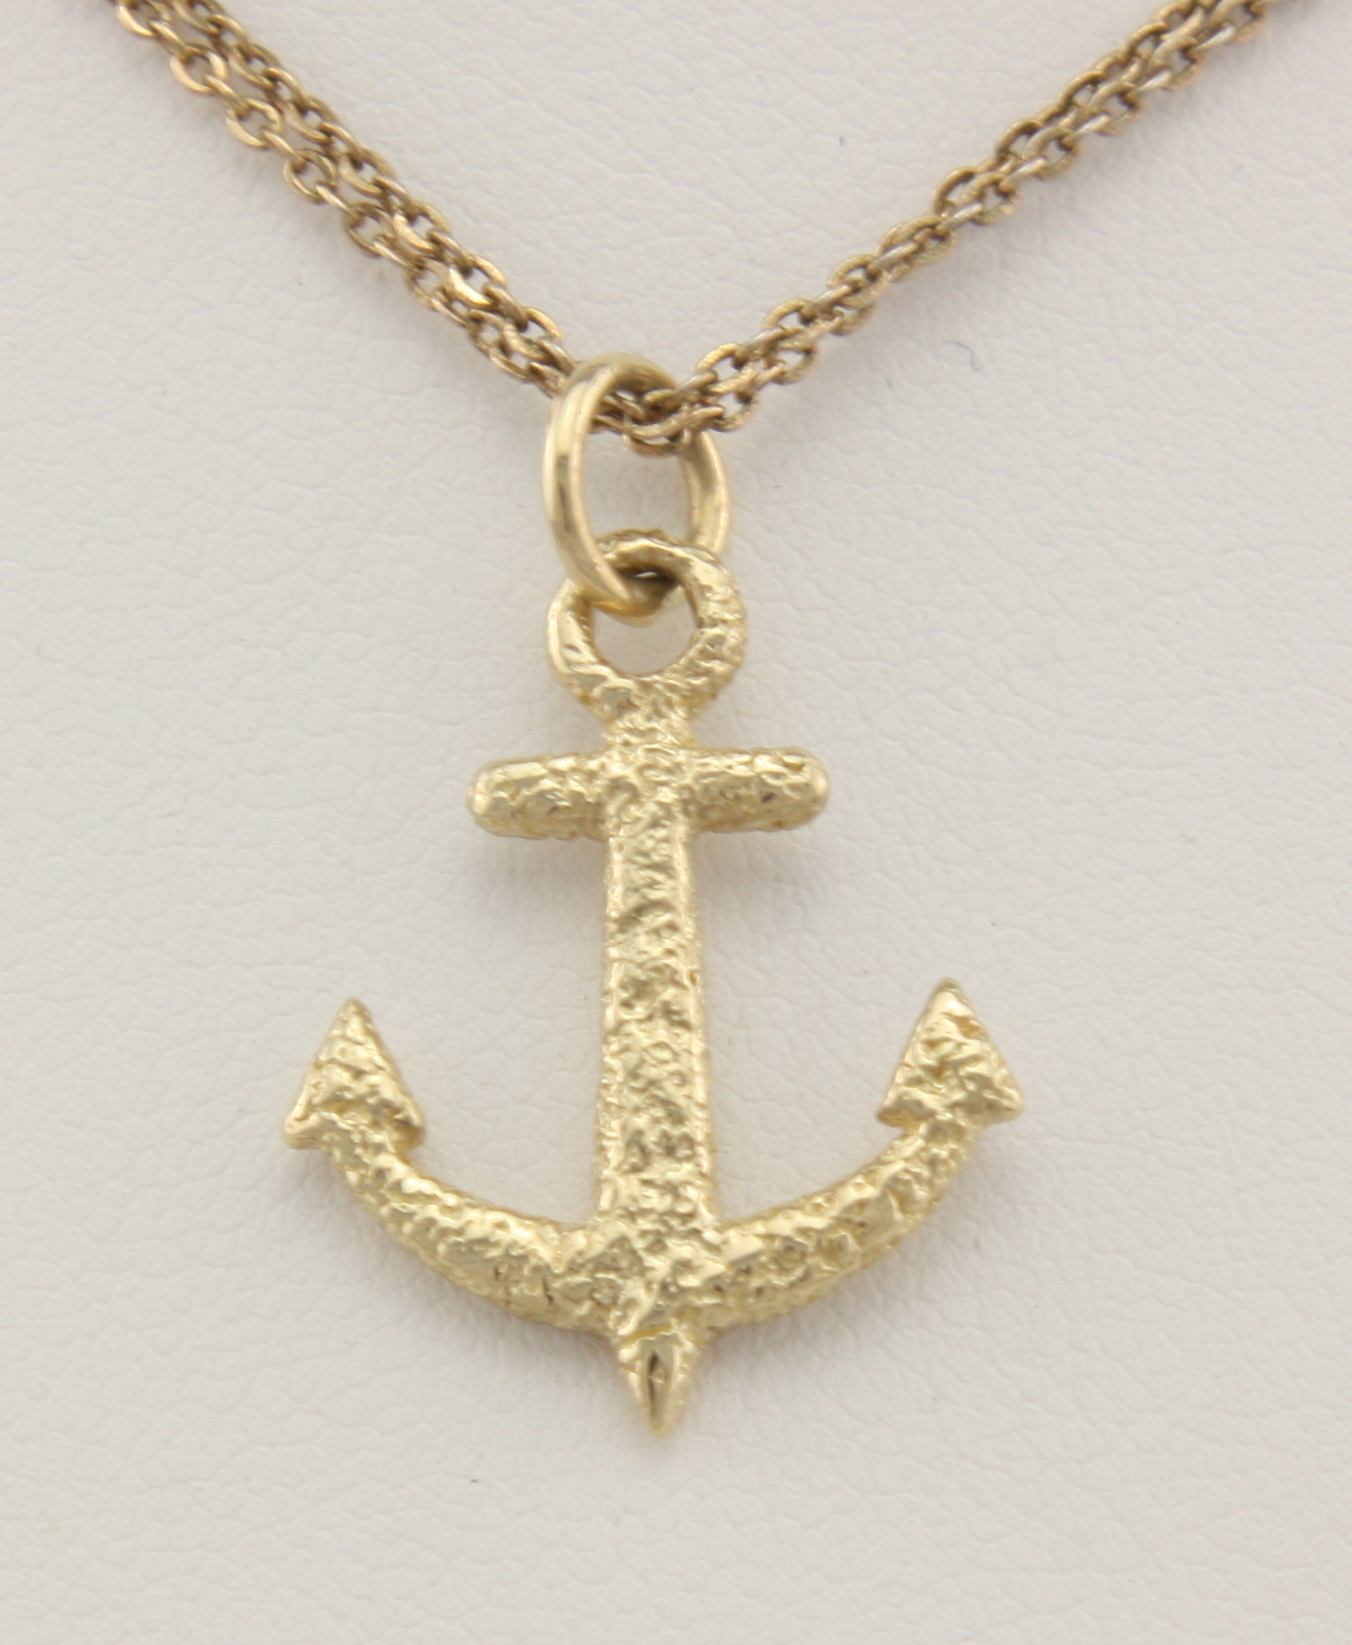 Speckled anchor 14karat neptune designs custom for Key west jewelry stores